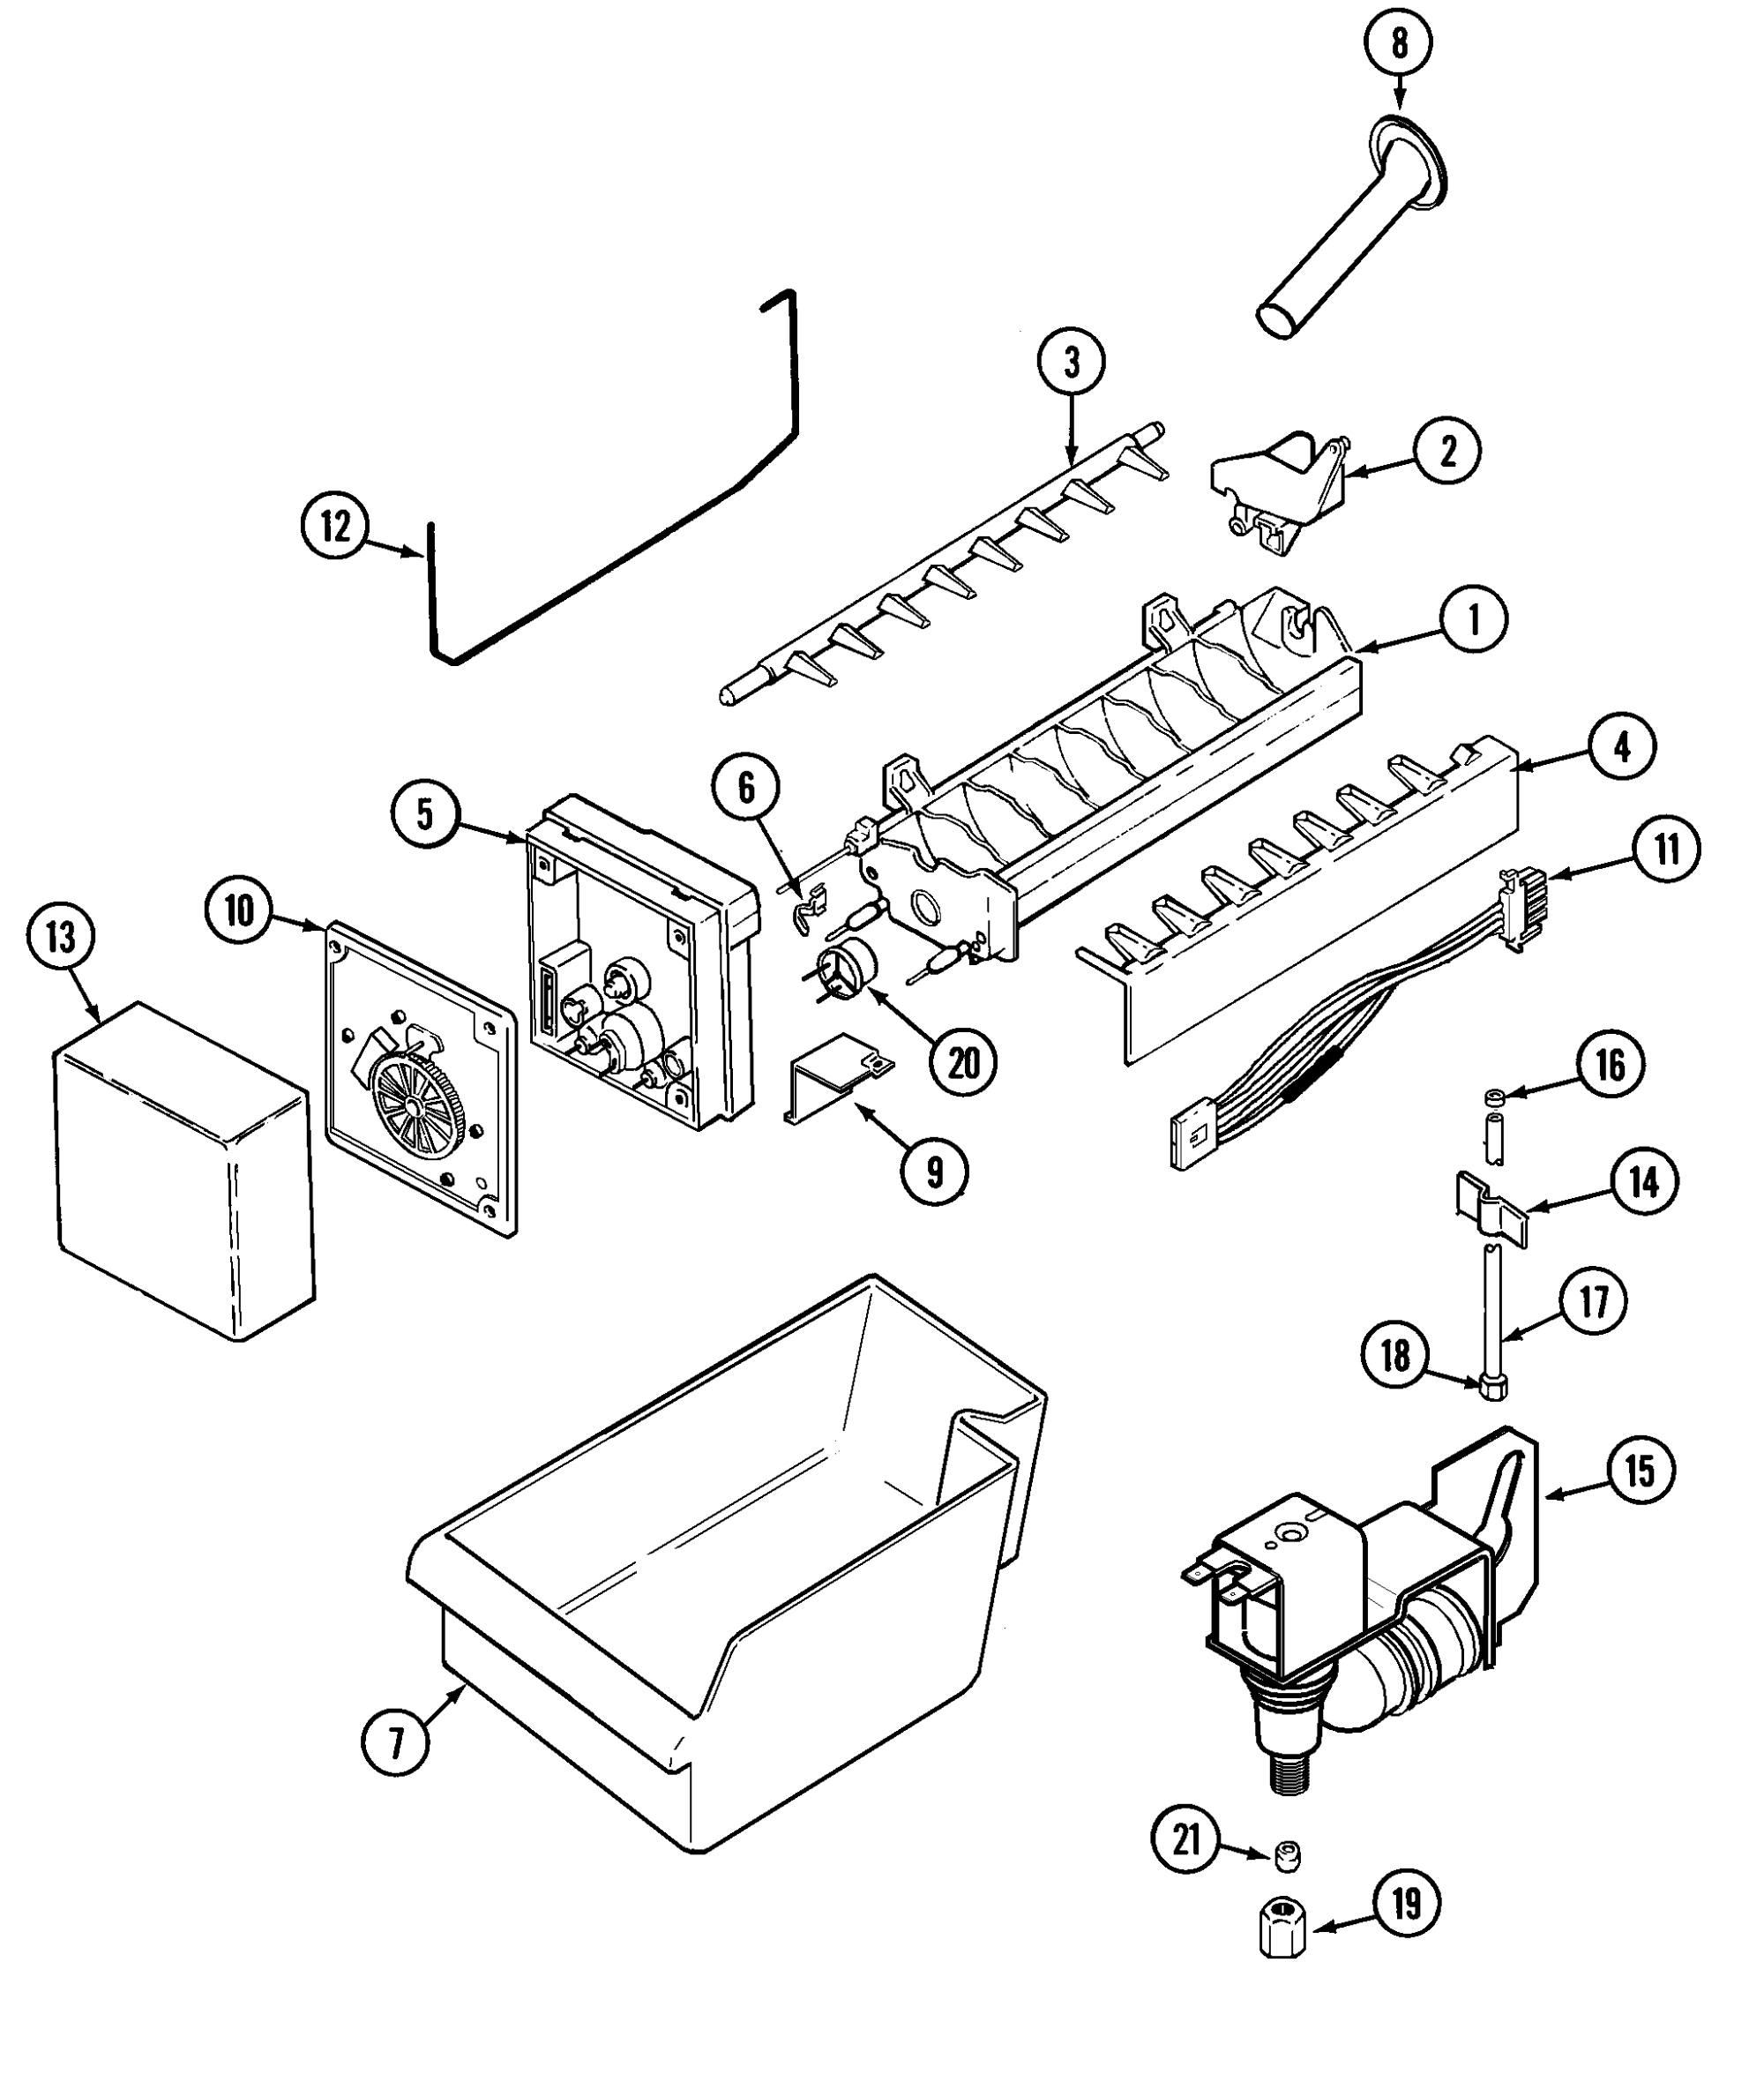 hight resolution of  uline ice maker wiring diagram on ice maker troubleshooting ice maker solenoid ge ice